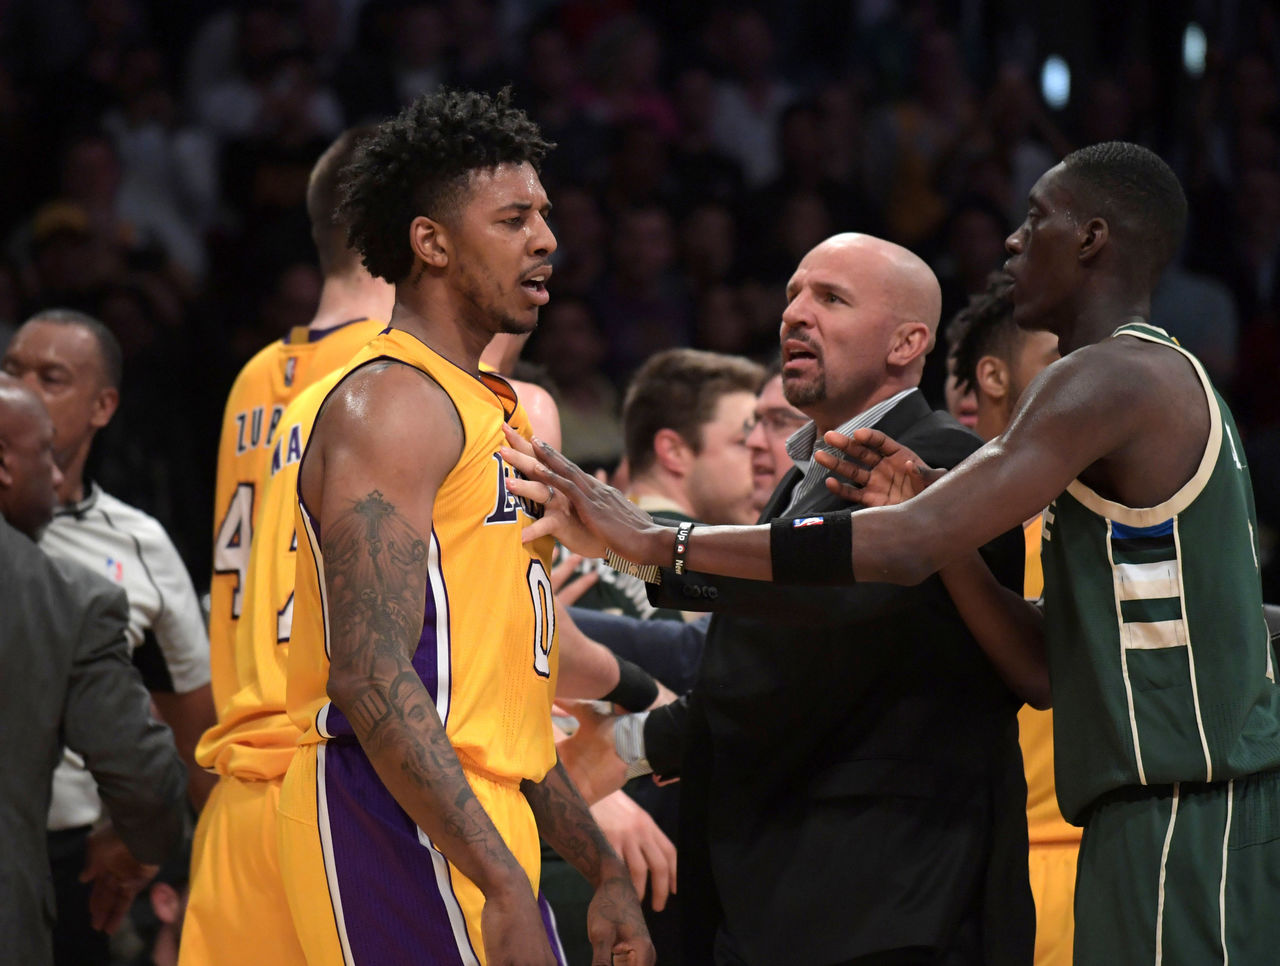 Cropped_2017-03-18t054009z_965586027_nocid_rtrmadp_3_nba-milwaukee-bucks-at-los-angeles-lakers